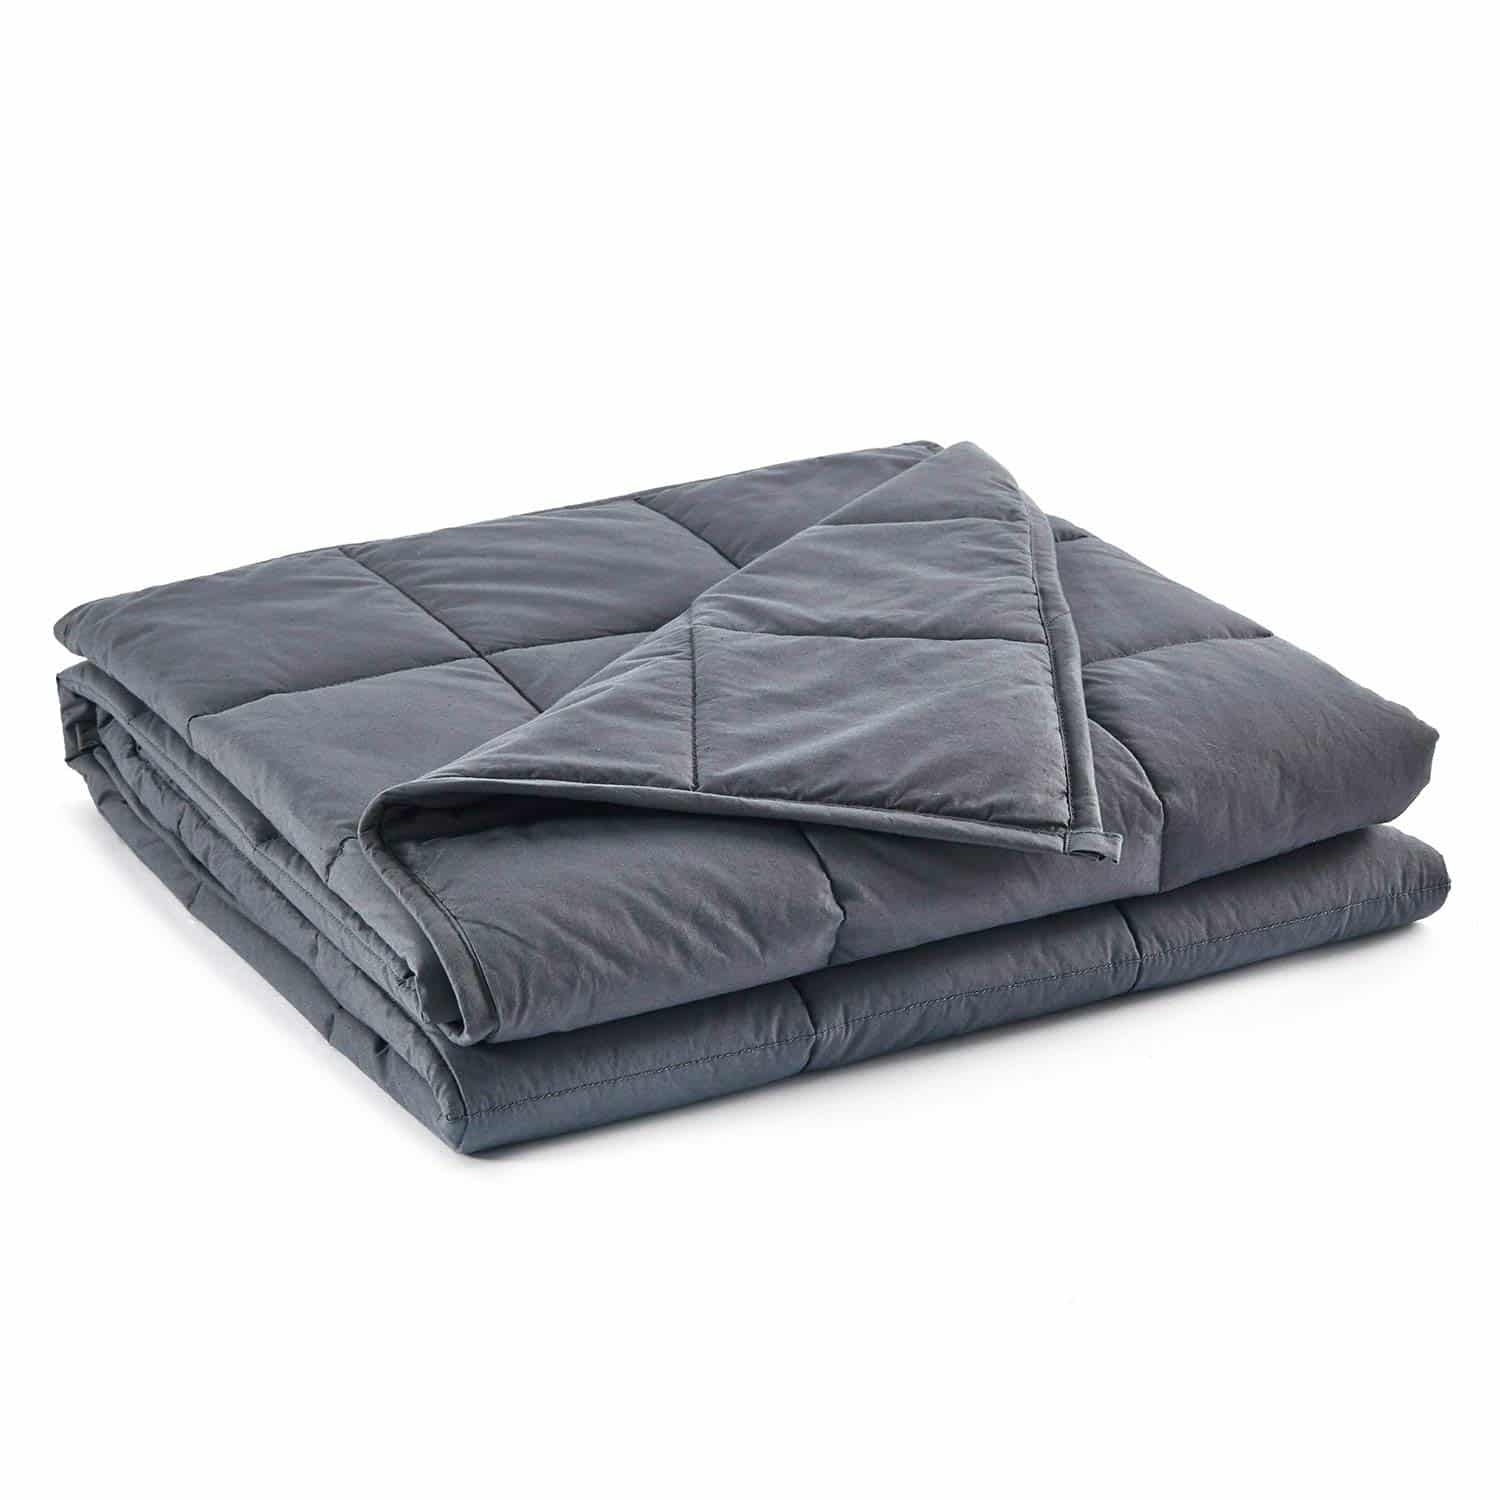 RelaxBlanket Adult Weighted Heavy Blanket